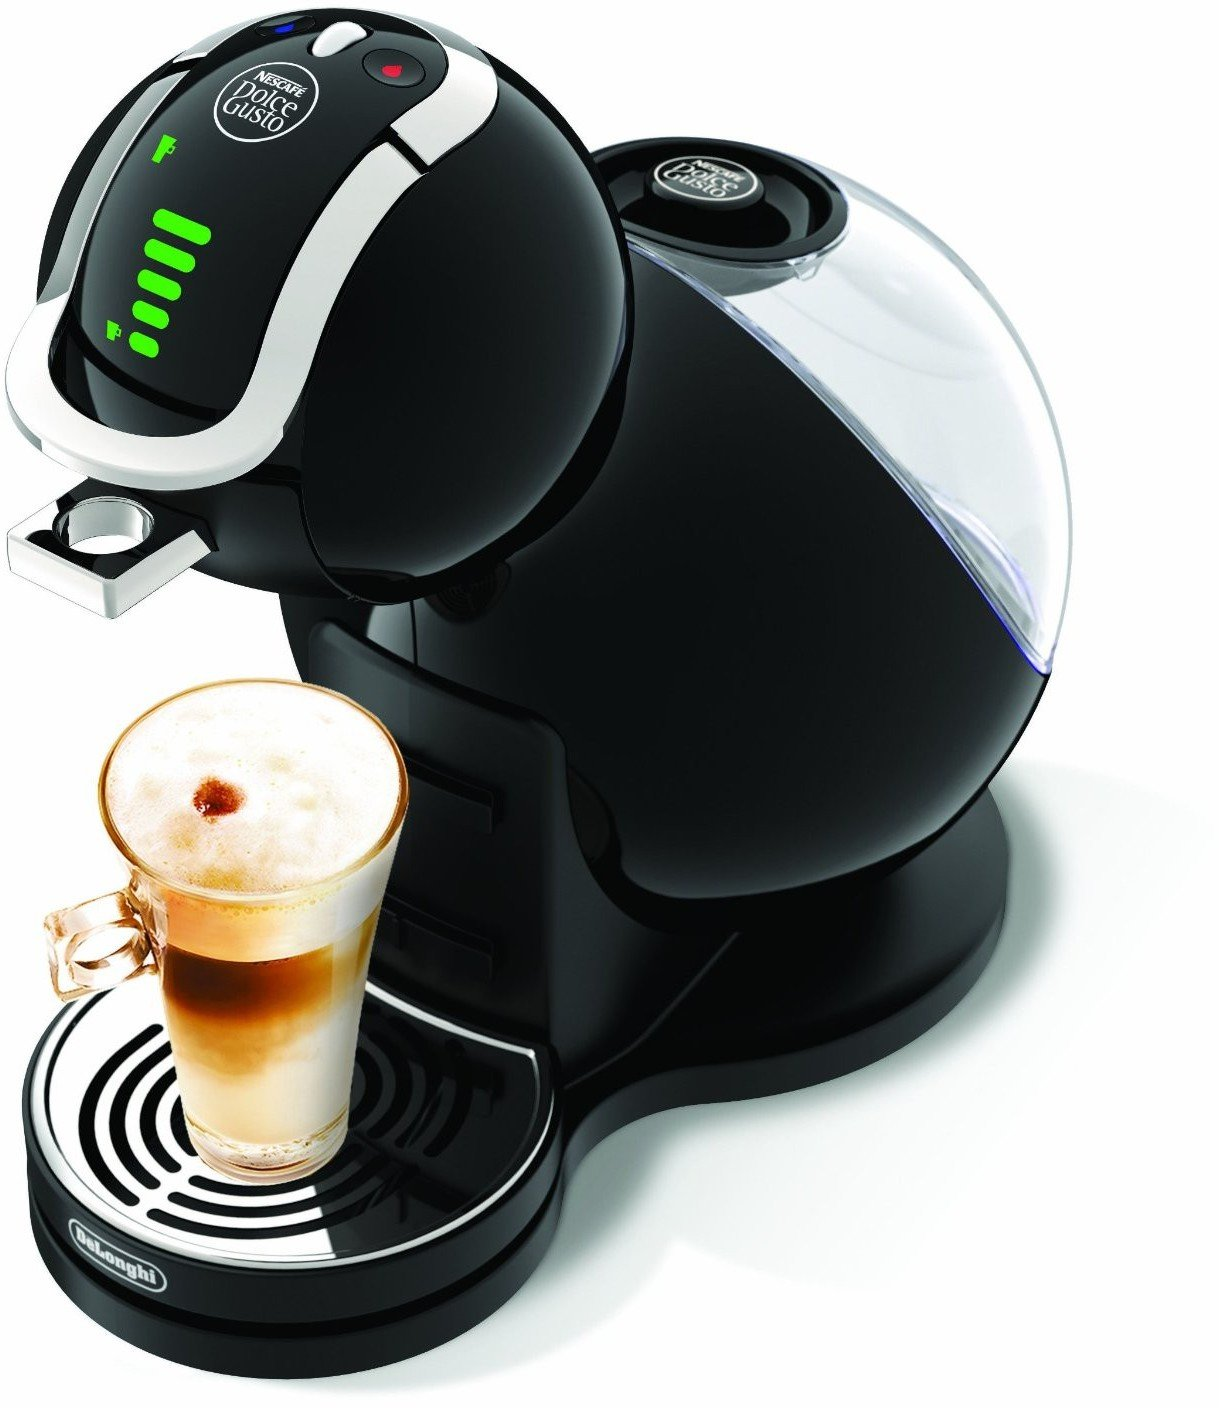 delonghi edg625 b dolce gusto melody iii automatic tests. Black Bedroom Furniture Sets. Home Design Ideas